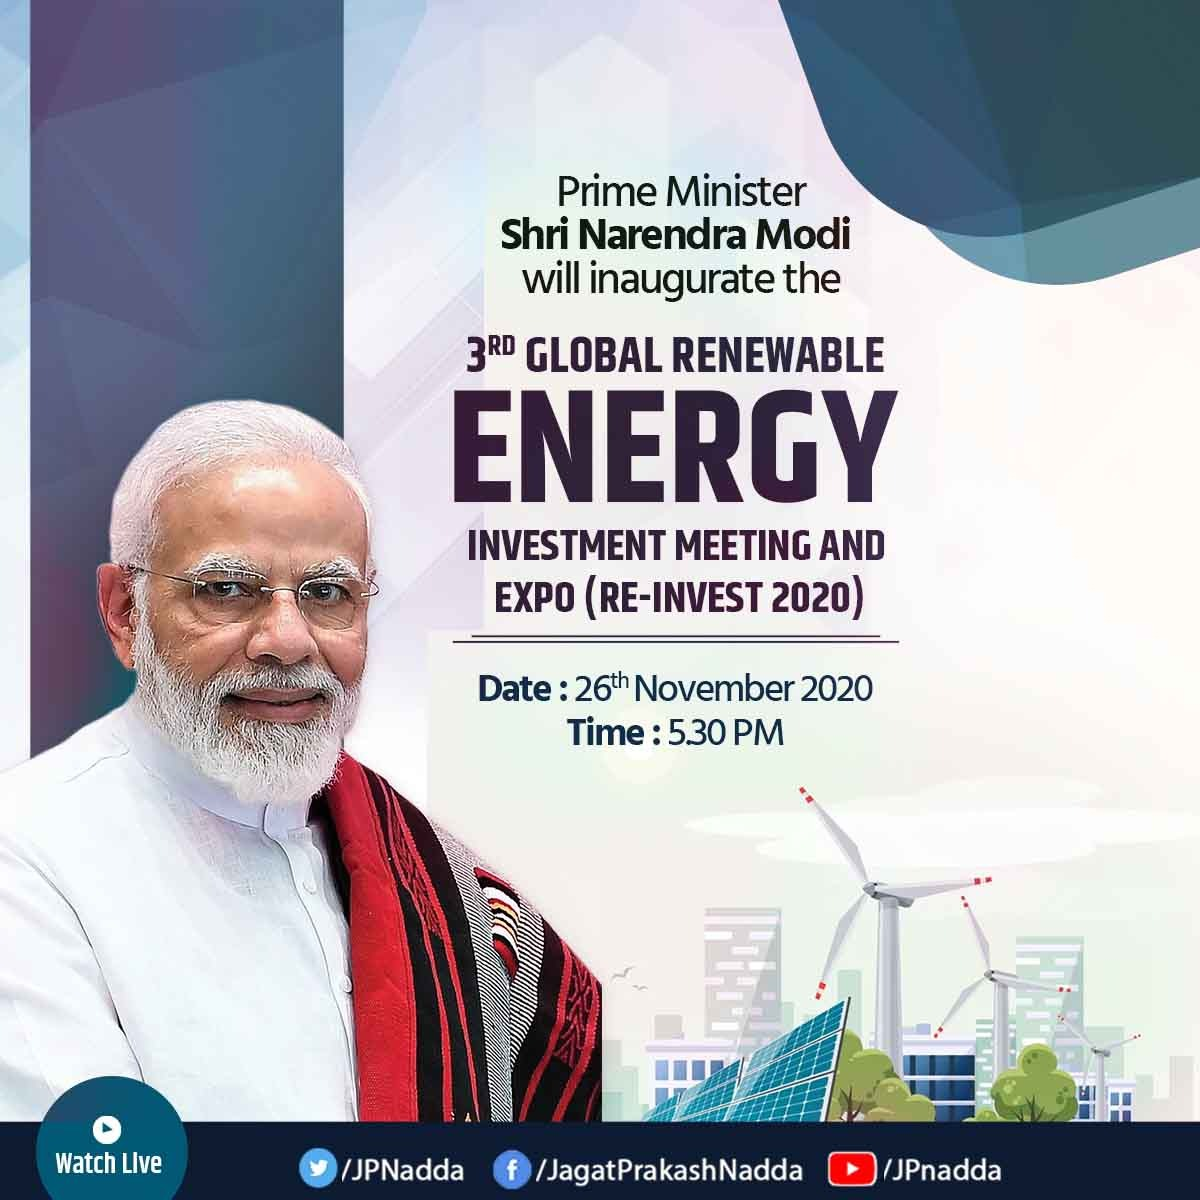 Hon Prime Minister Shri @narendramodi Ji will inaugurate the 3rd Global Renewable Energy Investment Meeting and Expo (Re-Invest 2020) at 5:30 PM tomorrow.